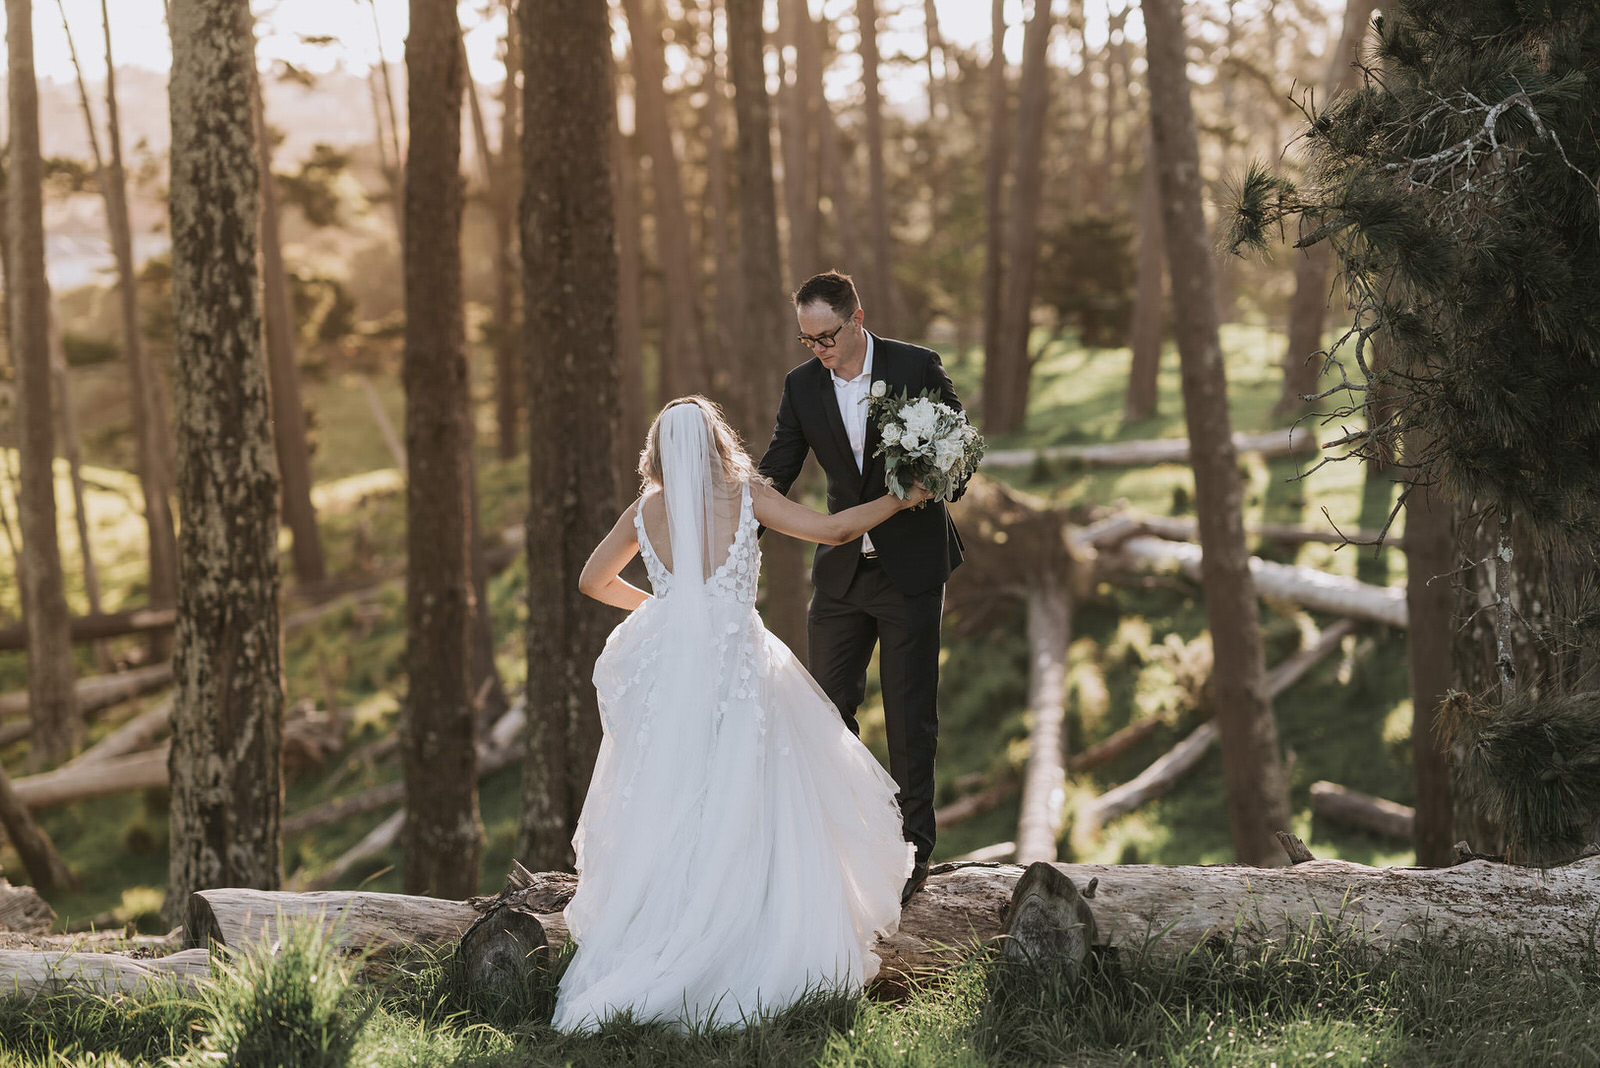 newfound-at-glendowie-auckland-wedding-photographers-137